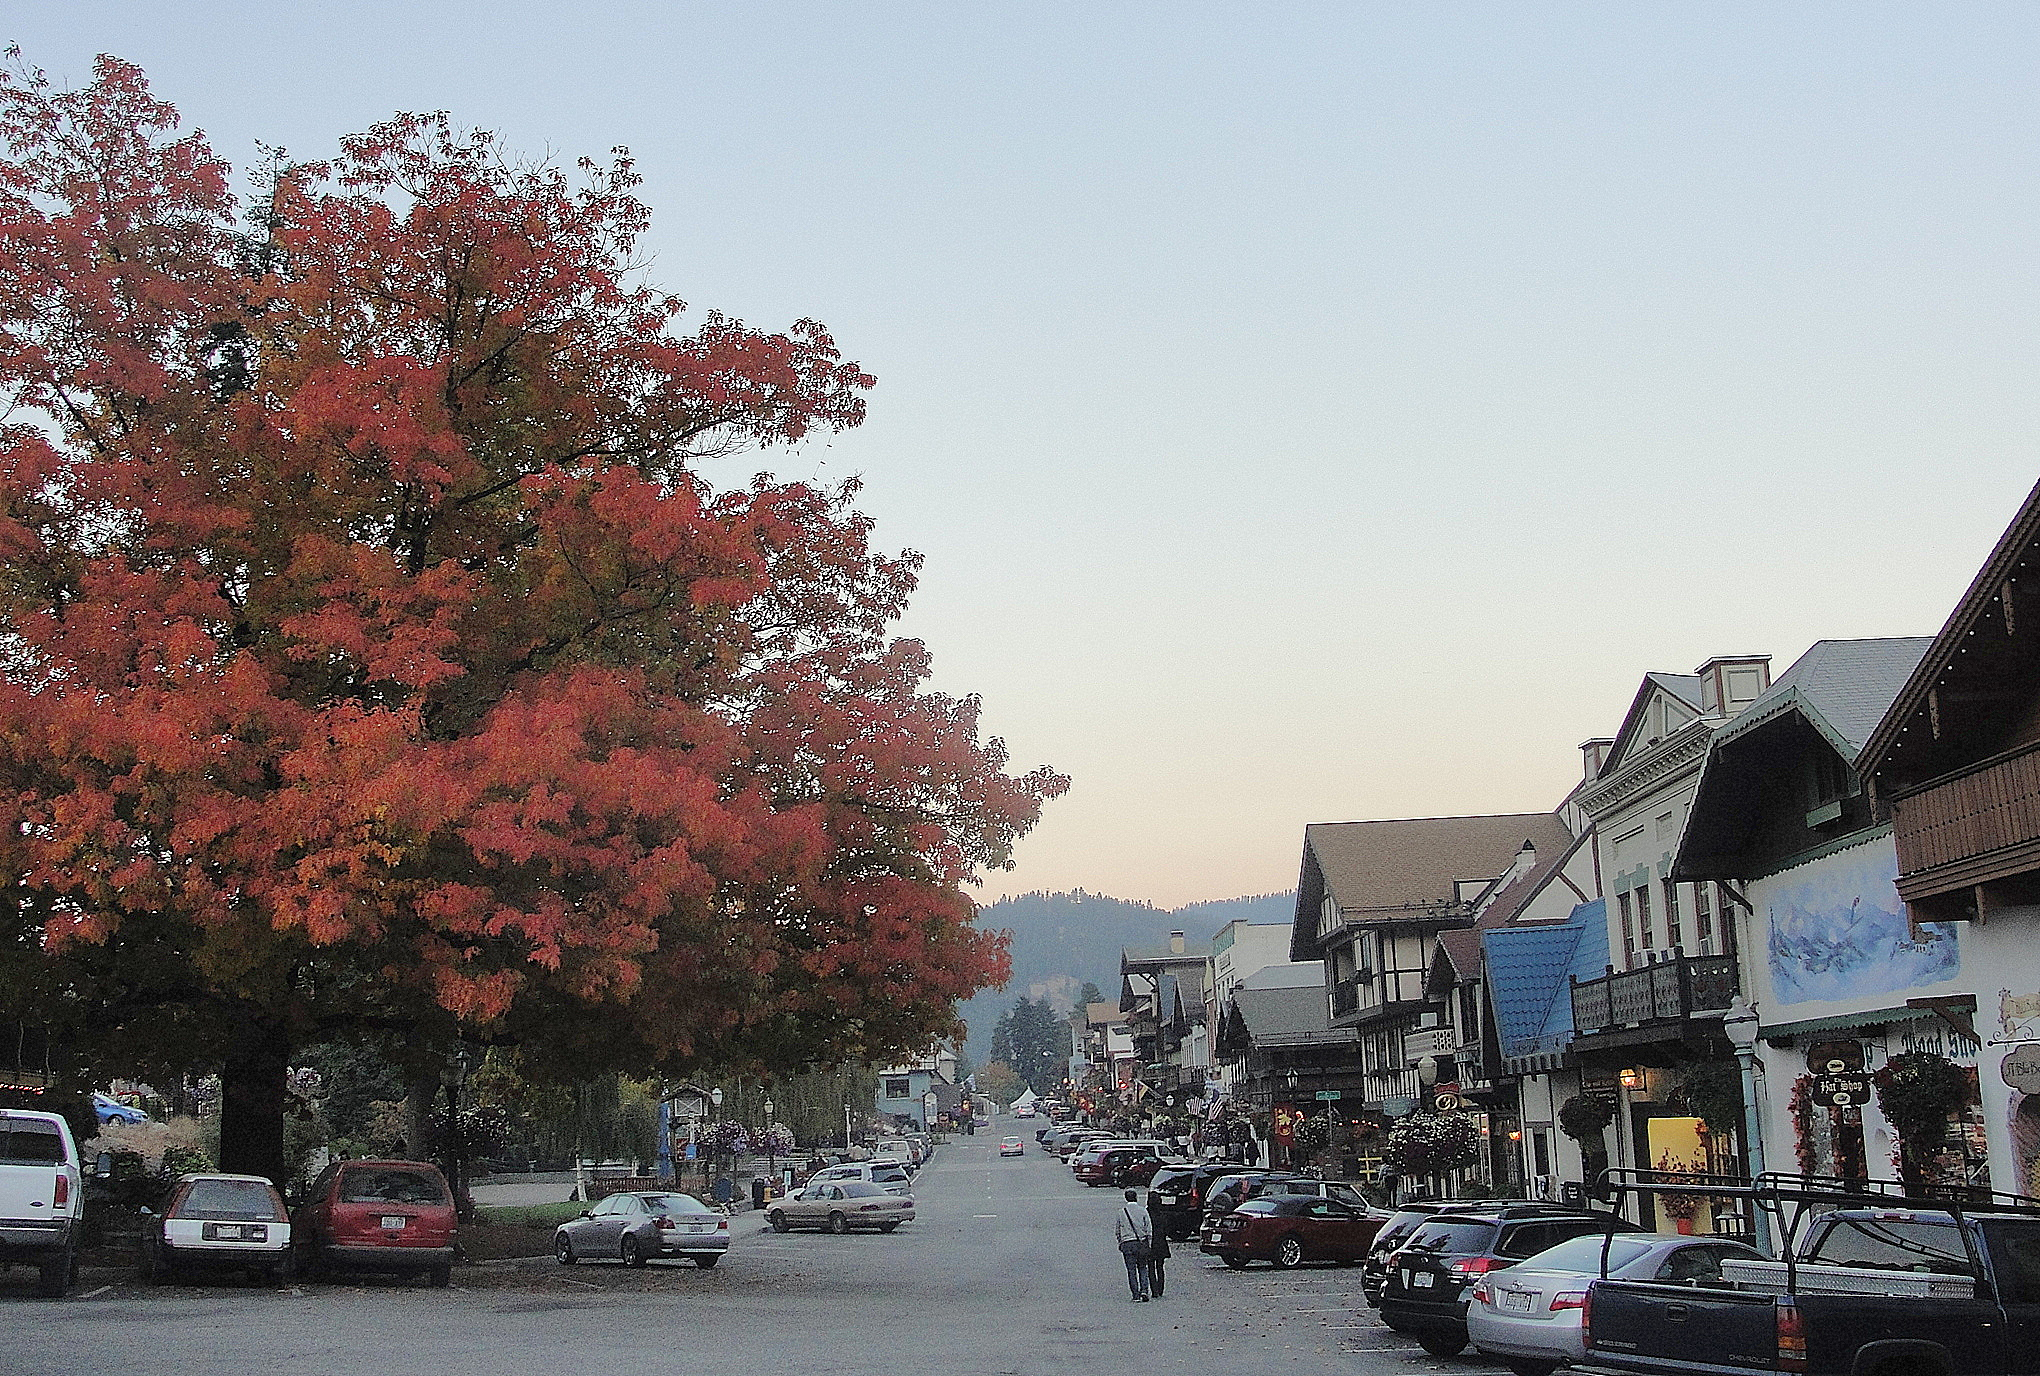 Can't afford a trip to Germany for Oktoberfest? Have no fear!  Leavenworth to the rescue, right here in the U.S. of A.